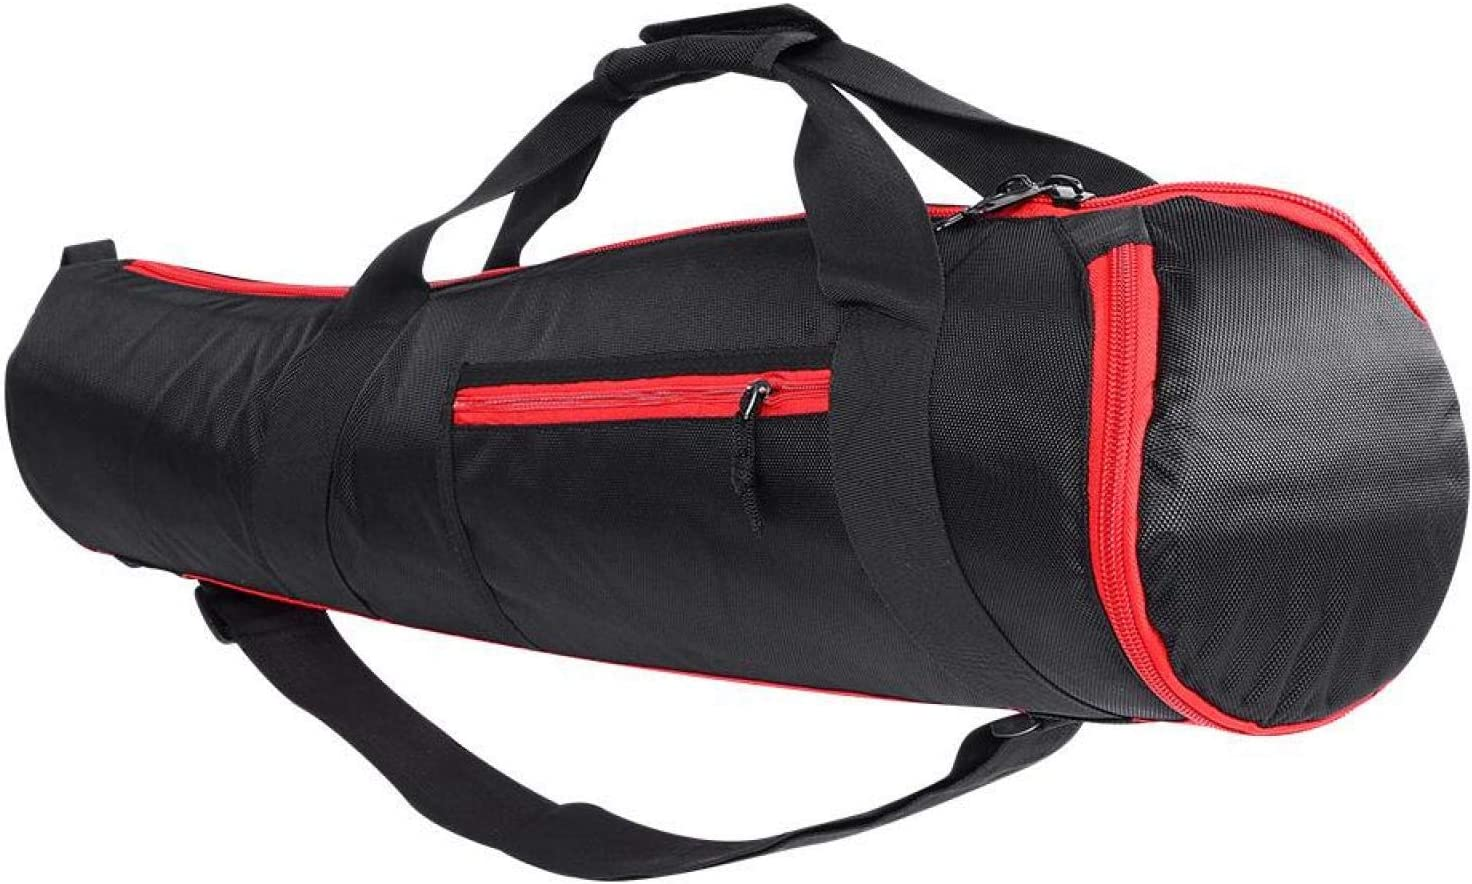 Monopod Bag Hand Lightweight Sale SALE% OFF and Outdo for Ranking TOP6 Portable